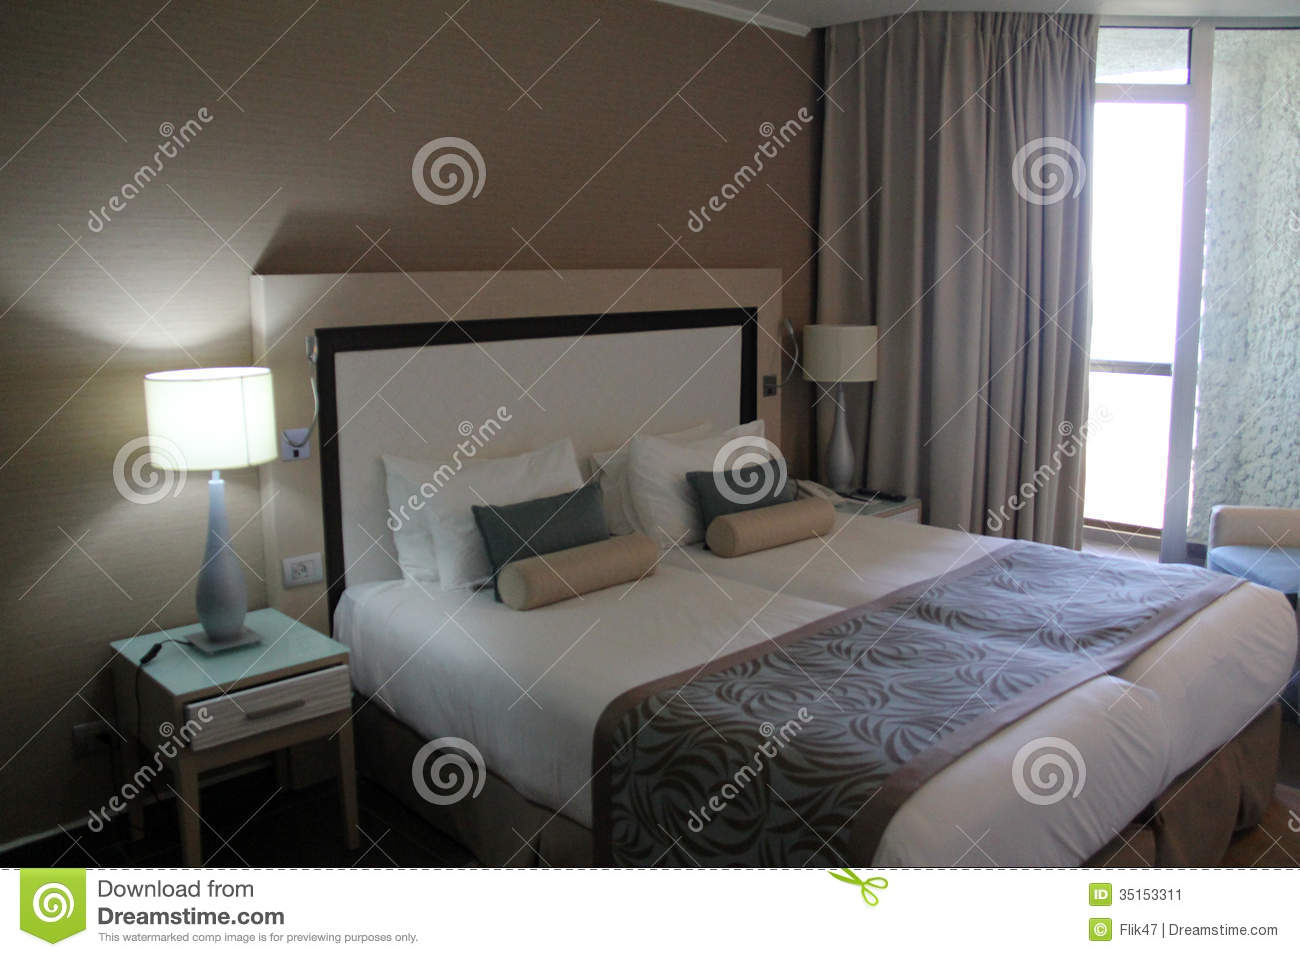 Chambre d 39 h tel image stock image 35153311 for Chambre d hotels